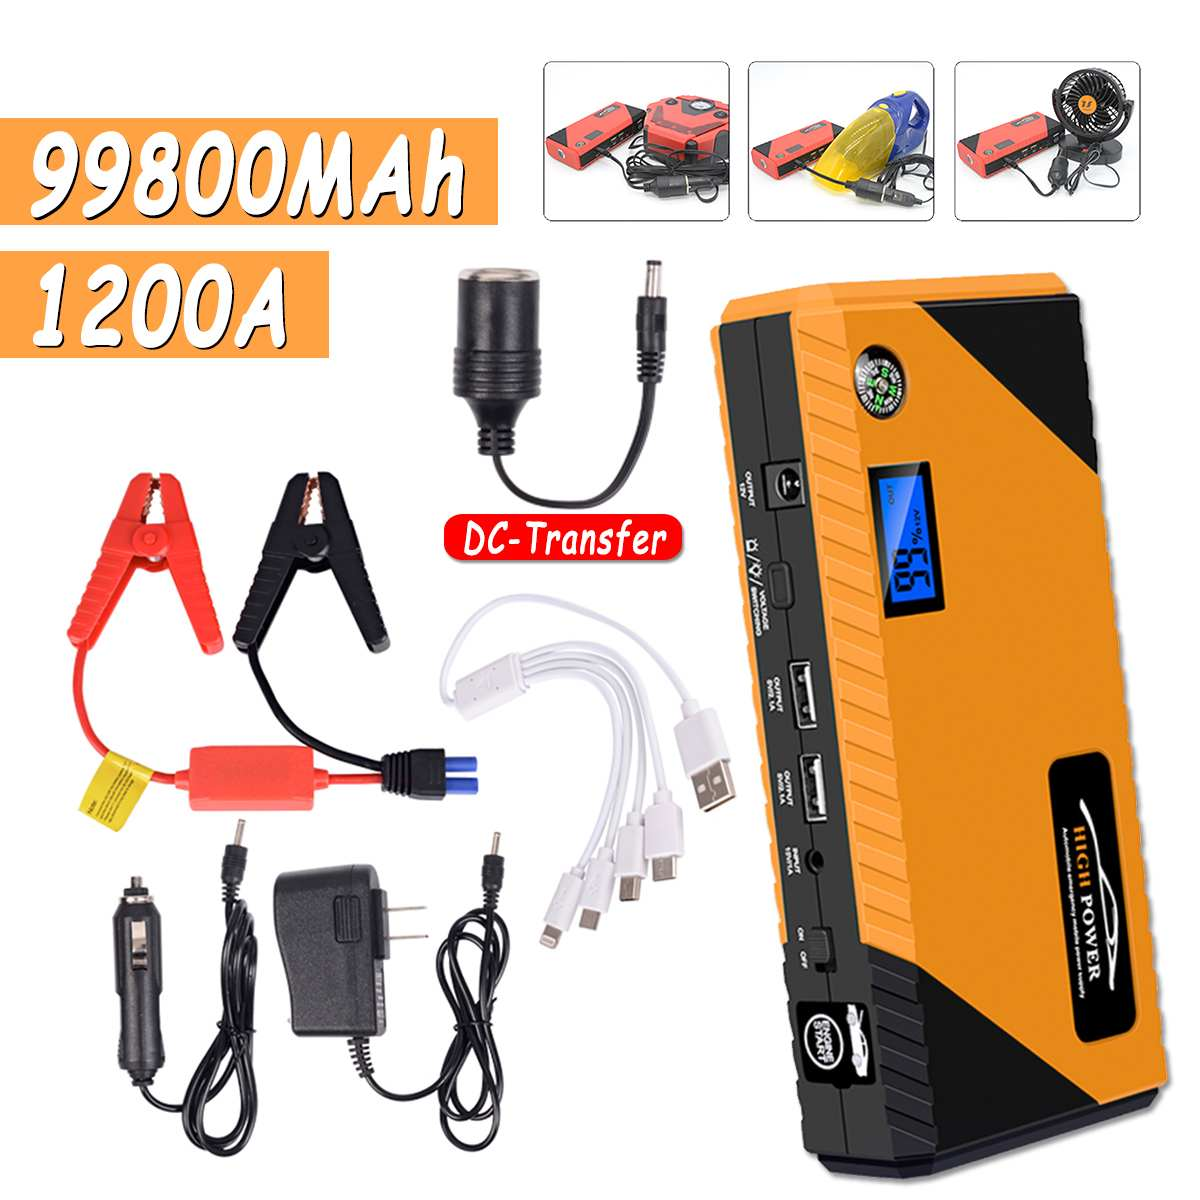 Dual USB Portable <font><b>Car</b></font> <font><b>Jump</b></font> <font><b>Starter</b></font> Pack Booster <font><b>Charger</b></font> <font><b>Battery</b></font> Power Bank 99800mAh LED Flash Light Starting Device <font><b>Car</b></font> <font><b>Battery</b></font> image